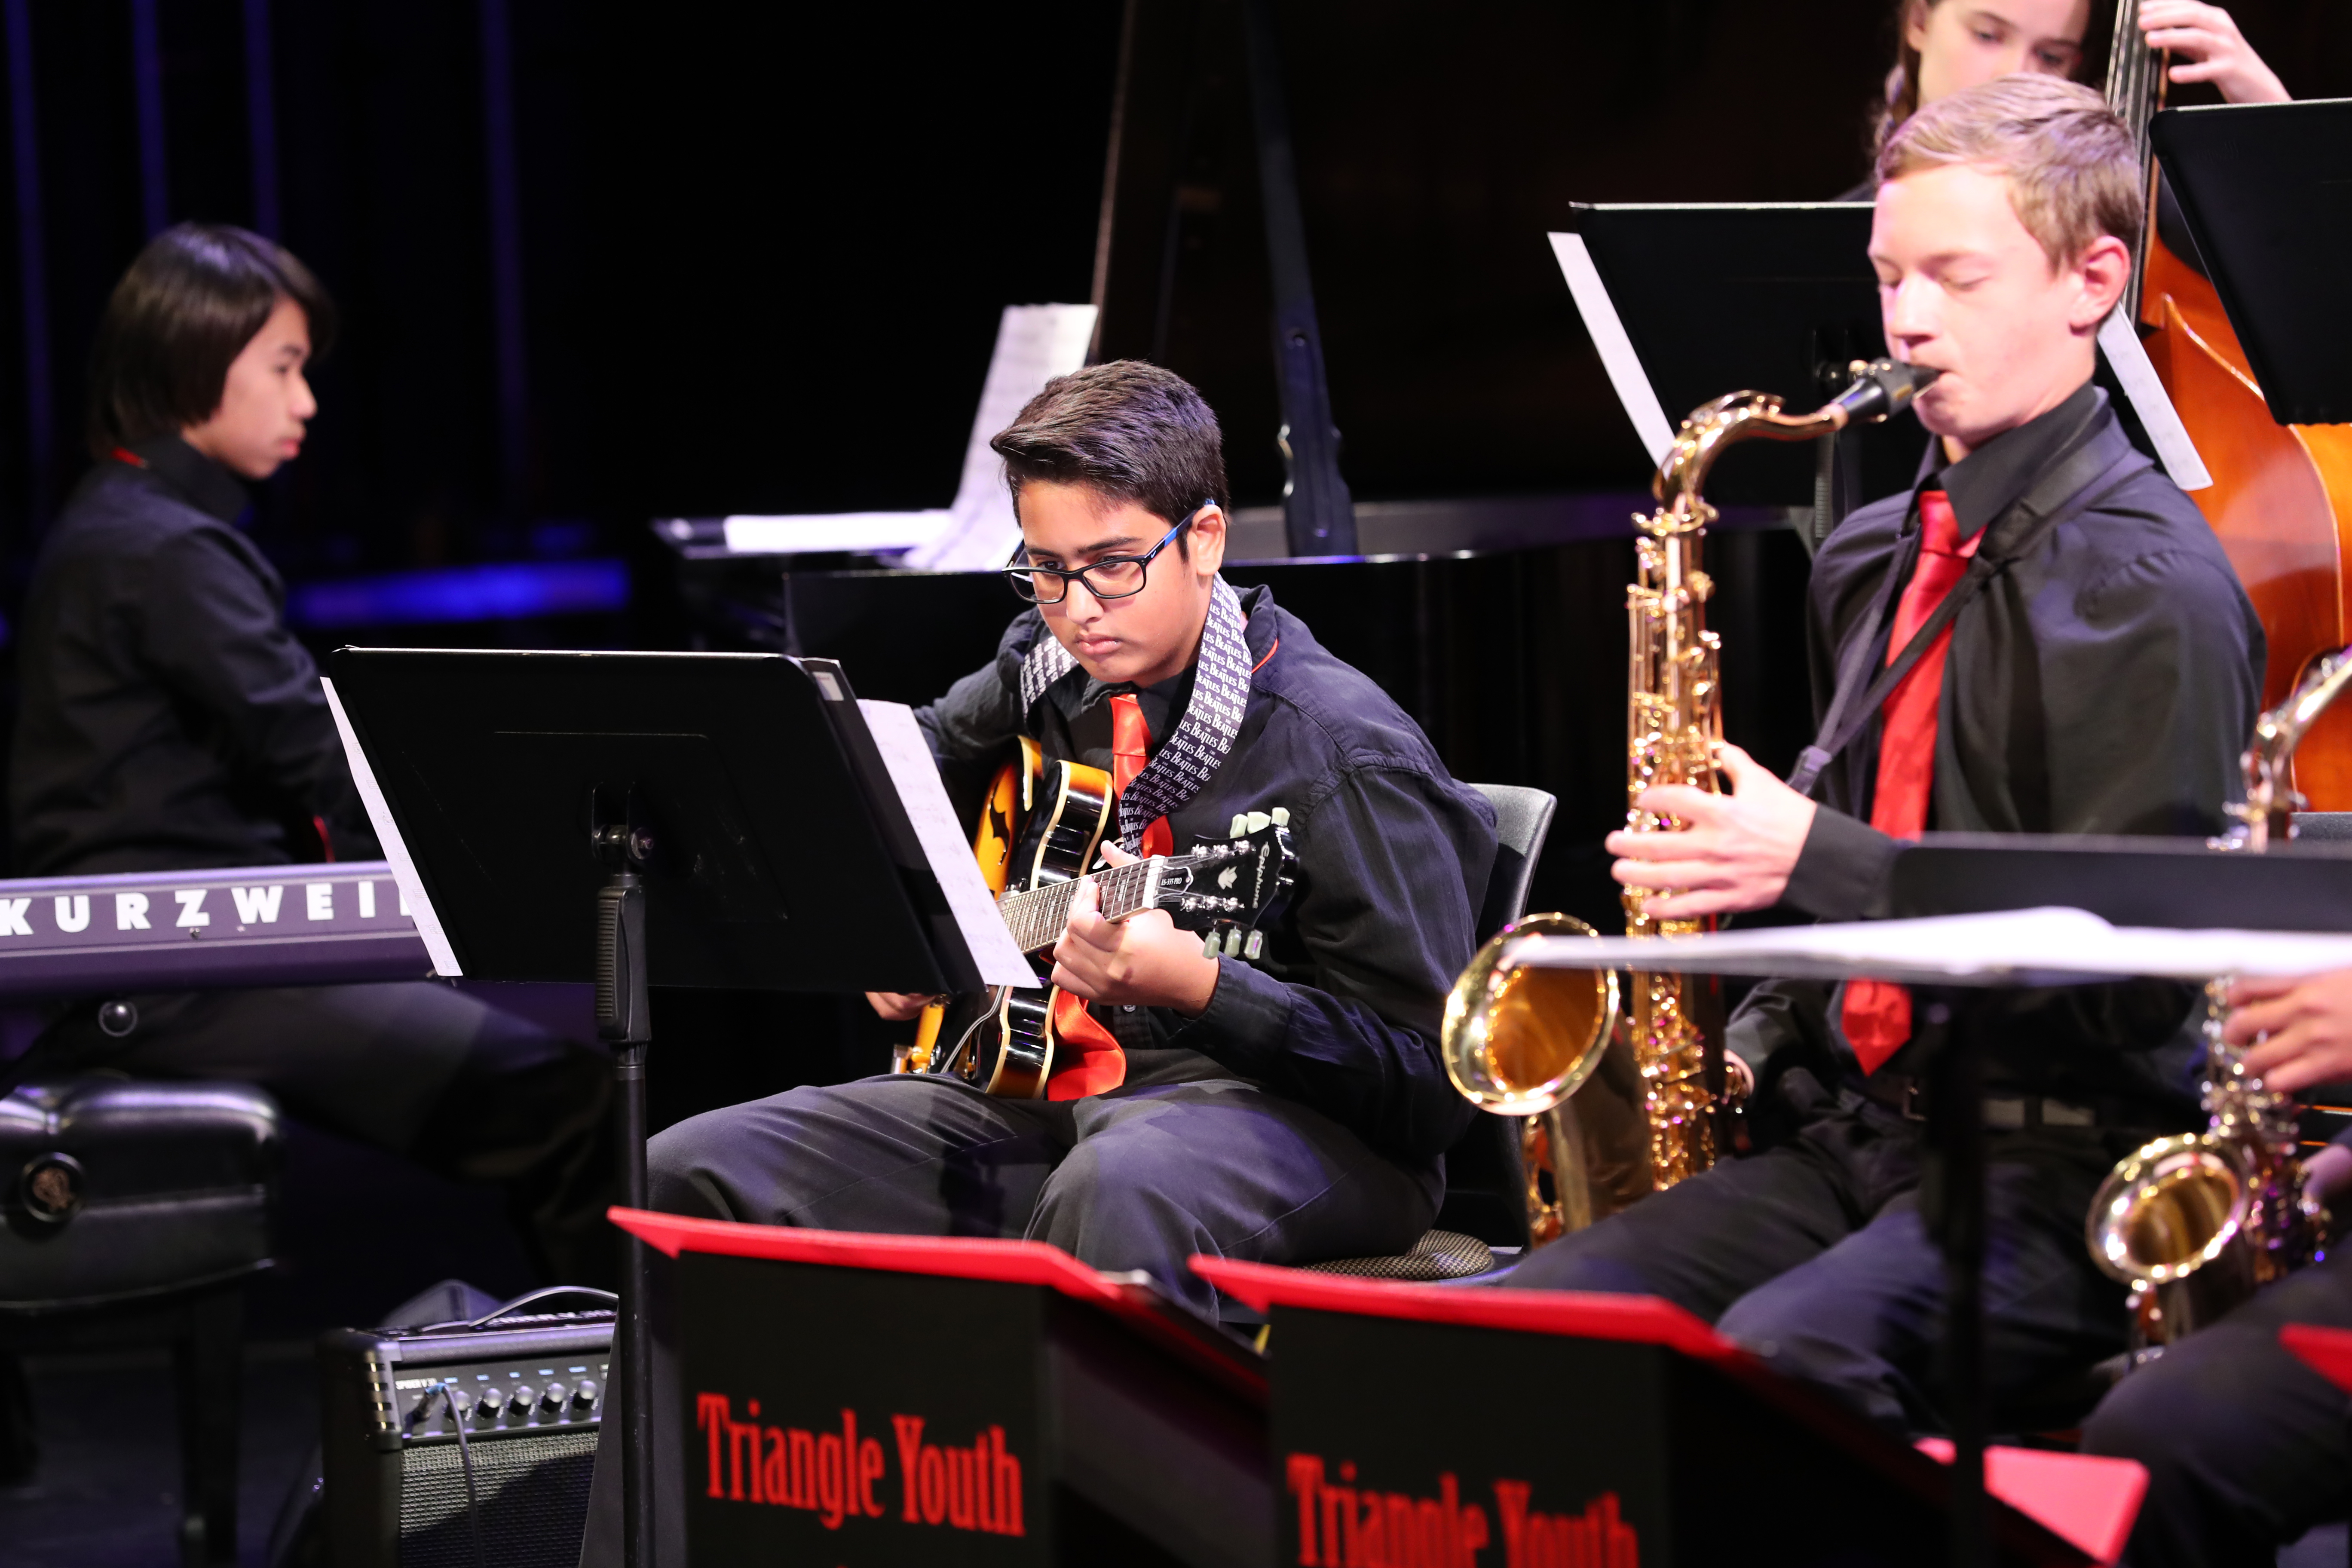 photo of jazz band saxophonist, guitarist, and pianist in action